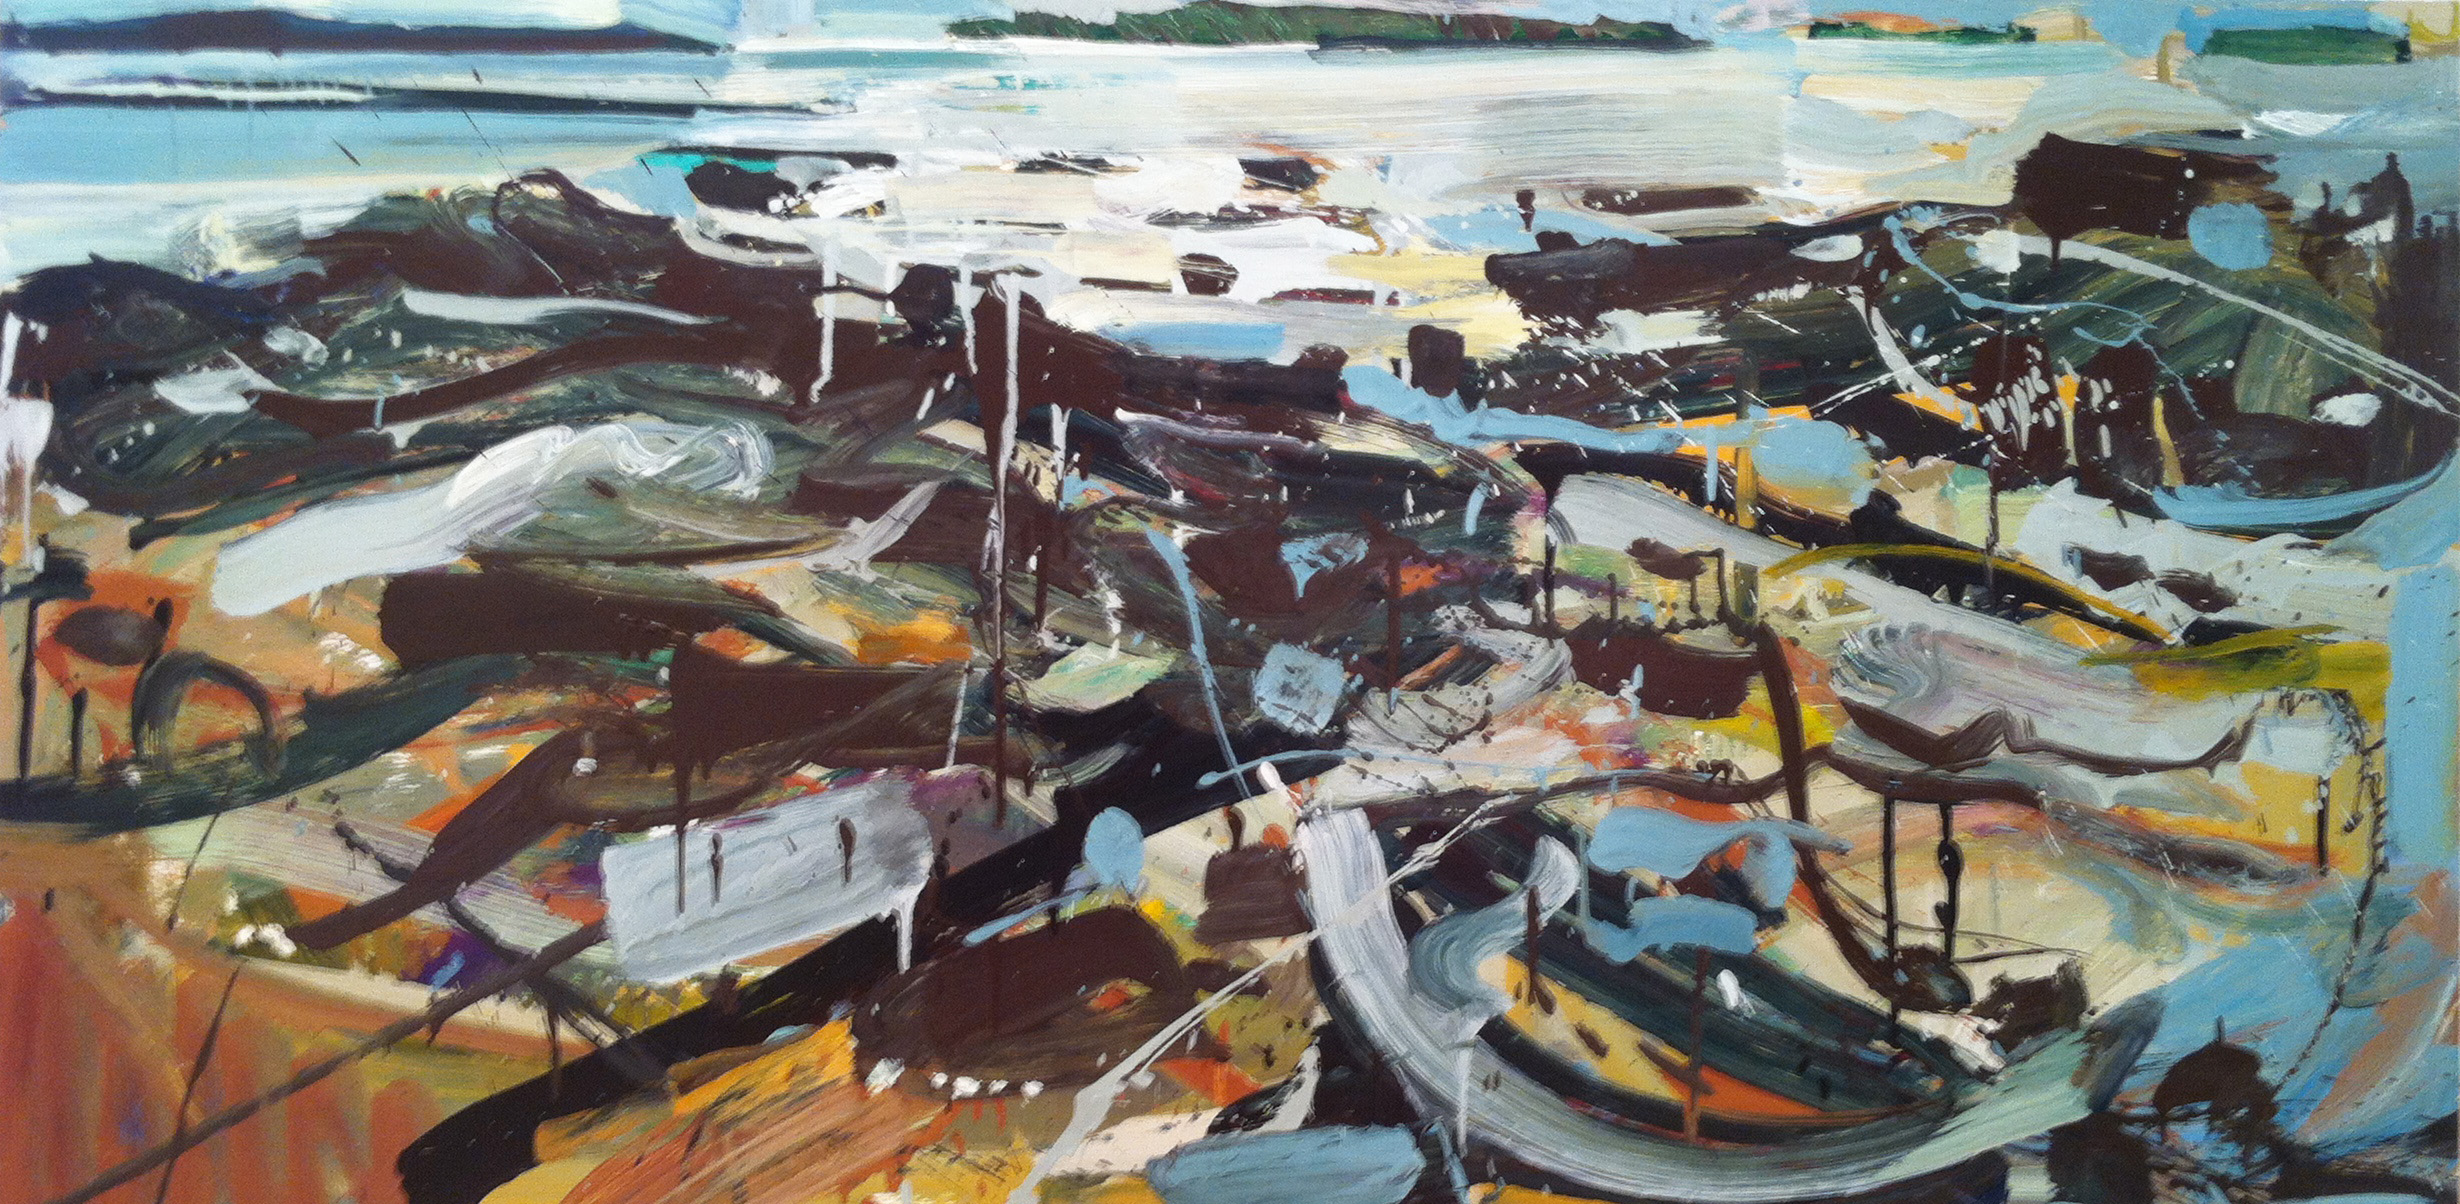 Low Tide, 2012 oil on panel, 24 x 48 inches